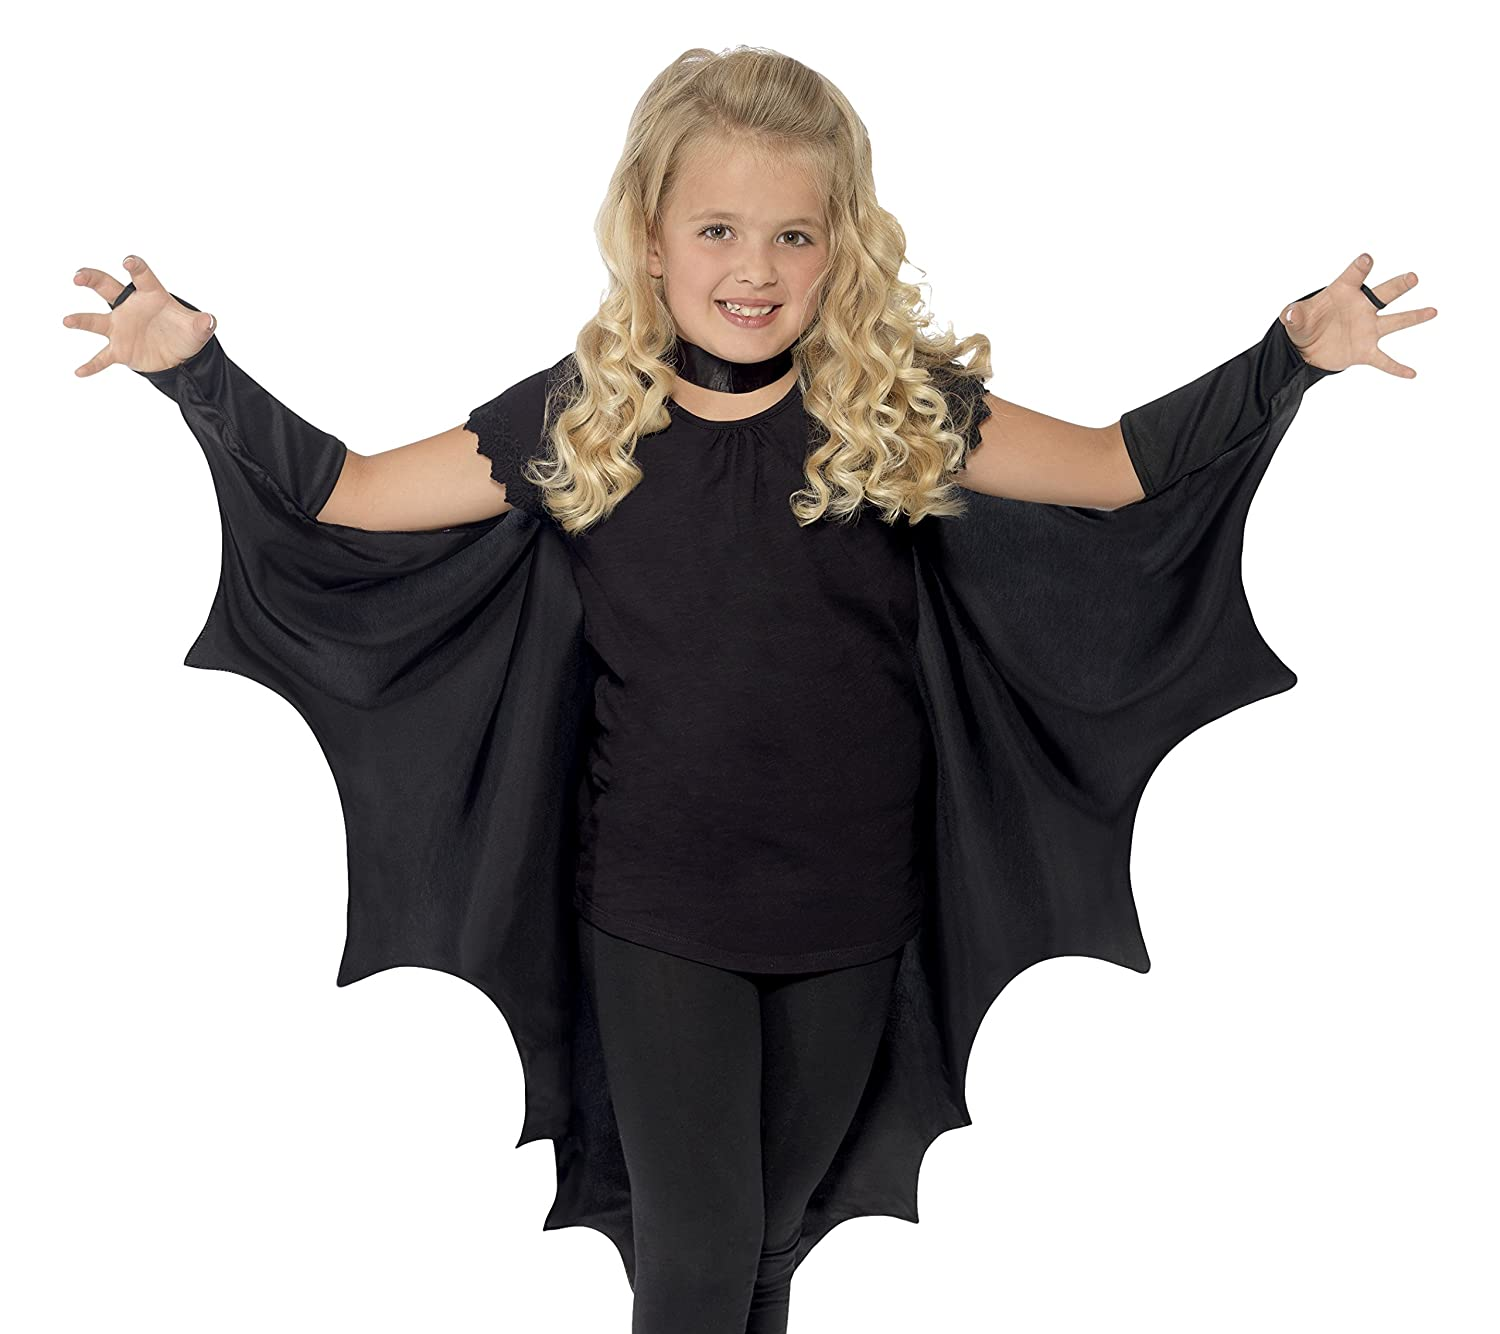 Amazon.com Smiffys Kids Unisex V&ire Bat Costume Wings Black One Size 44414 Smiffys Toys u0026 Games  sc 1 st  Amazon.com : girl vampire costumes for kids  - Germanpascual.Com